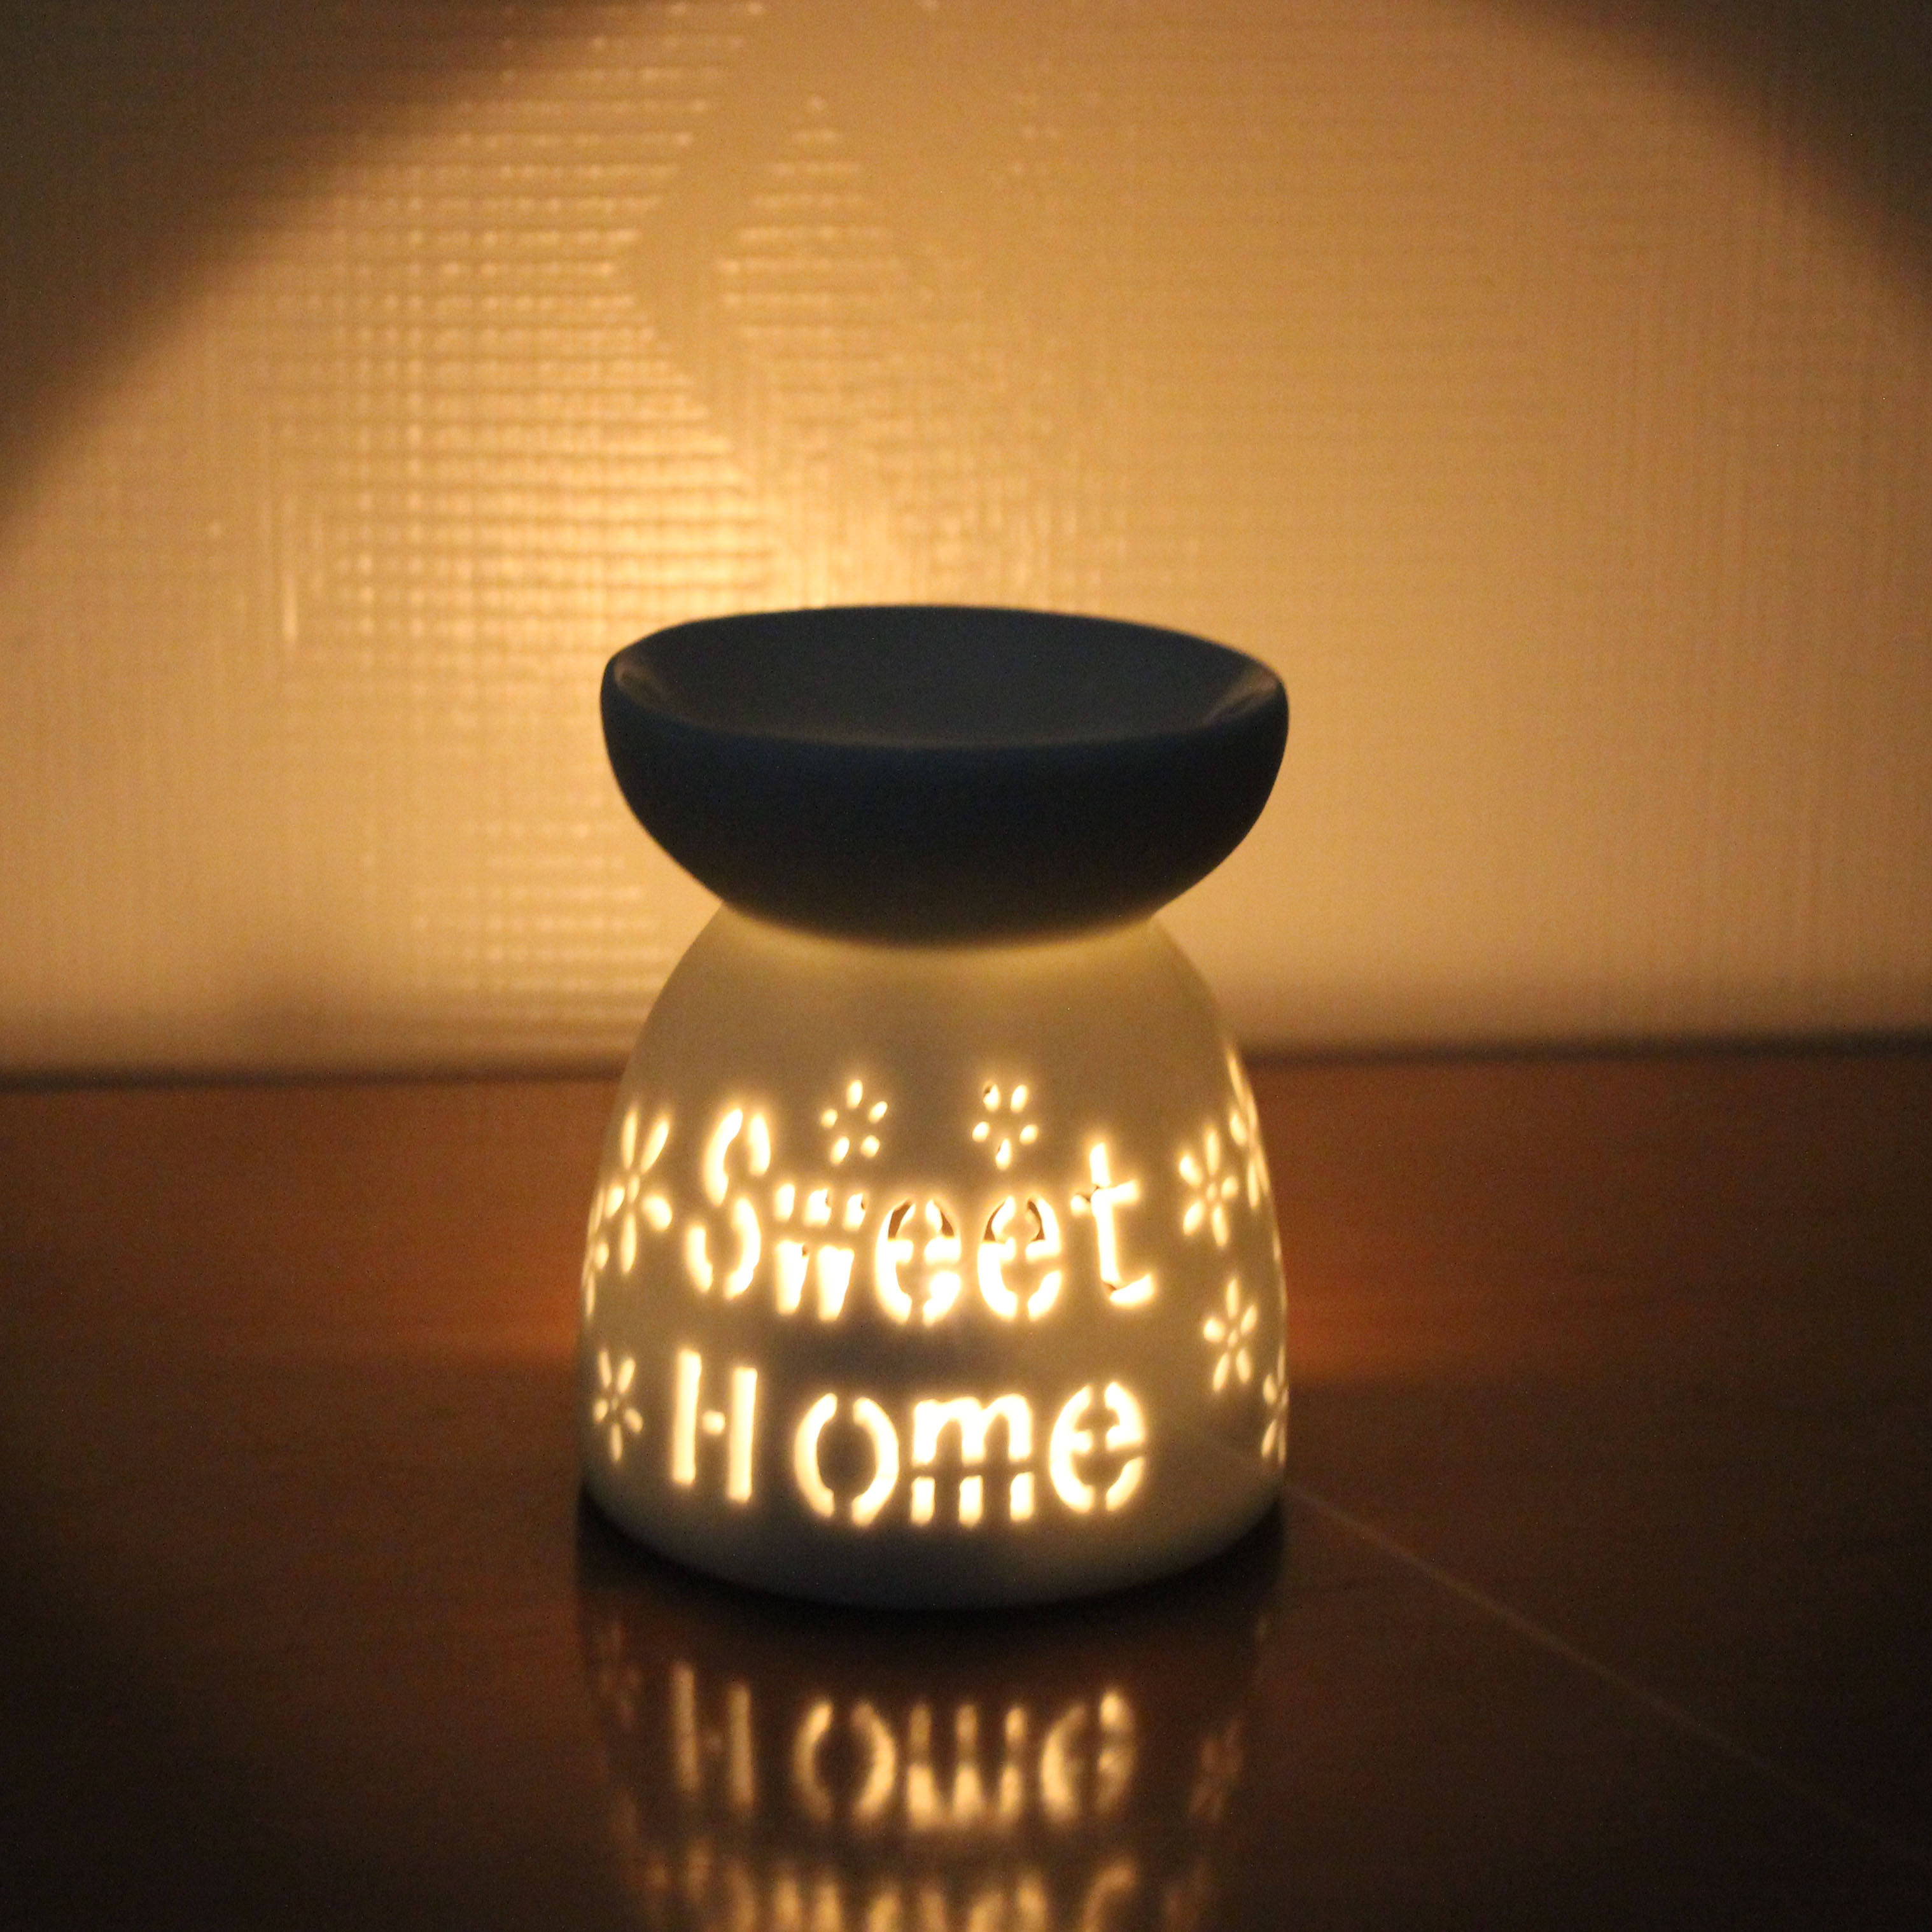 Furnace Home Decoration Romantic White Ceramic Tealight Candle Holder Oil Burner, Essential Oil Incense